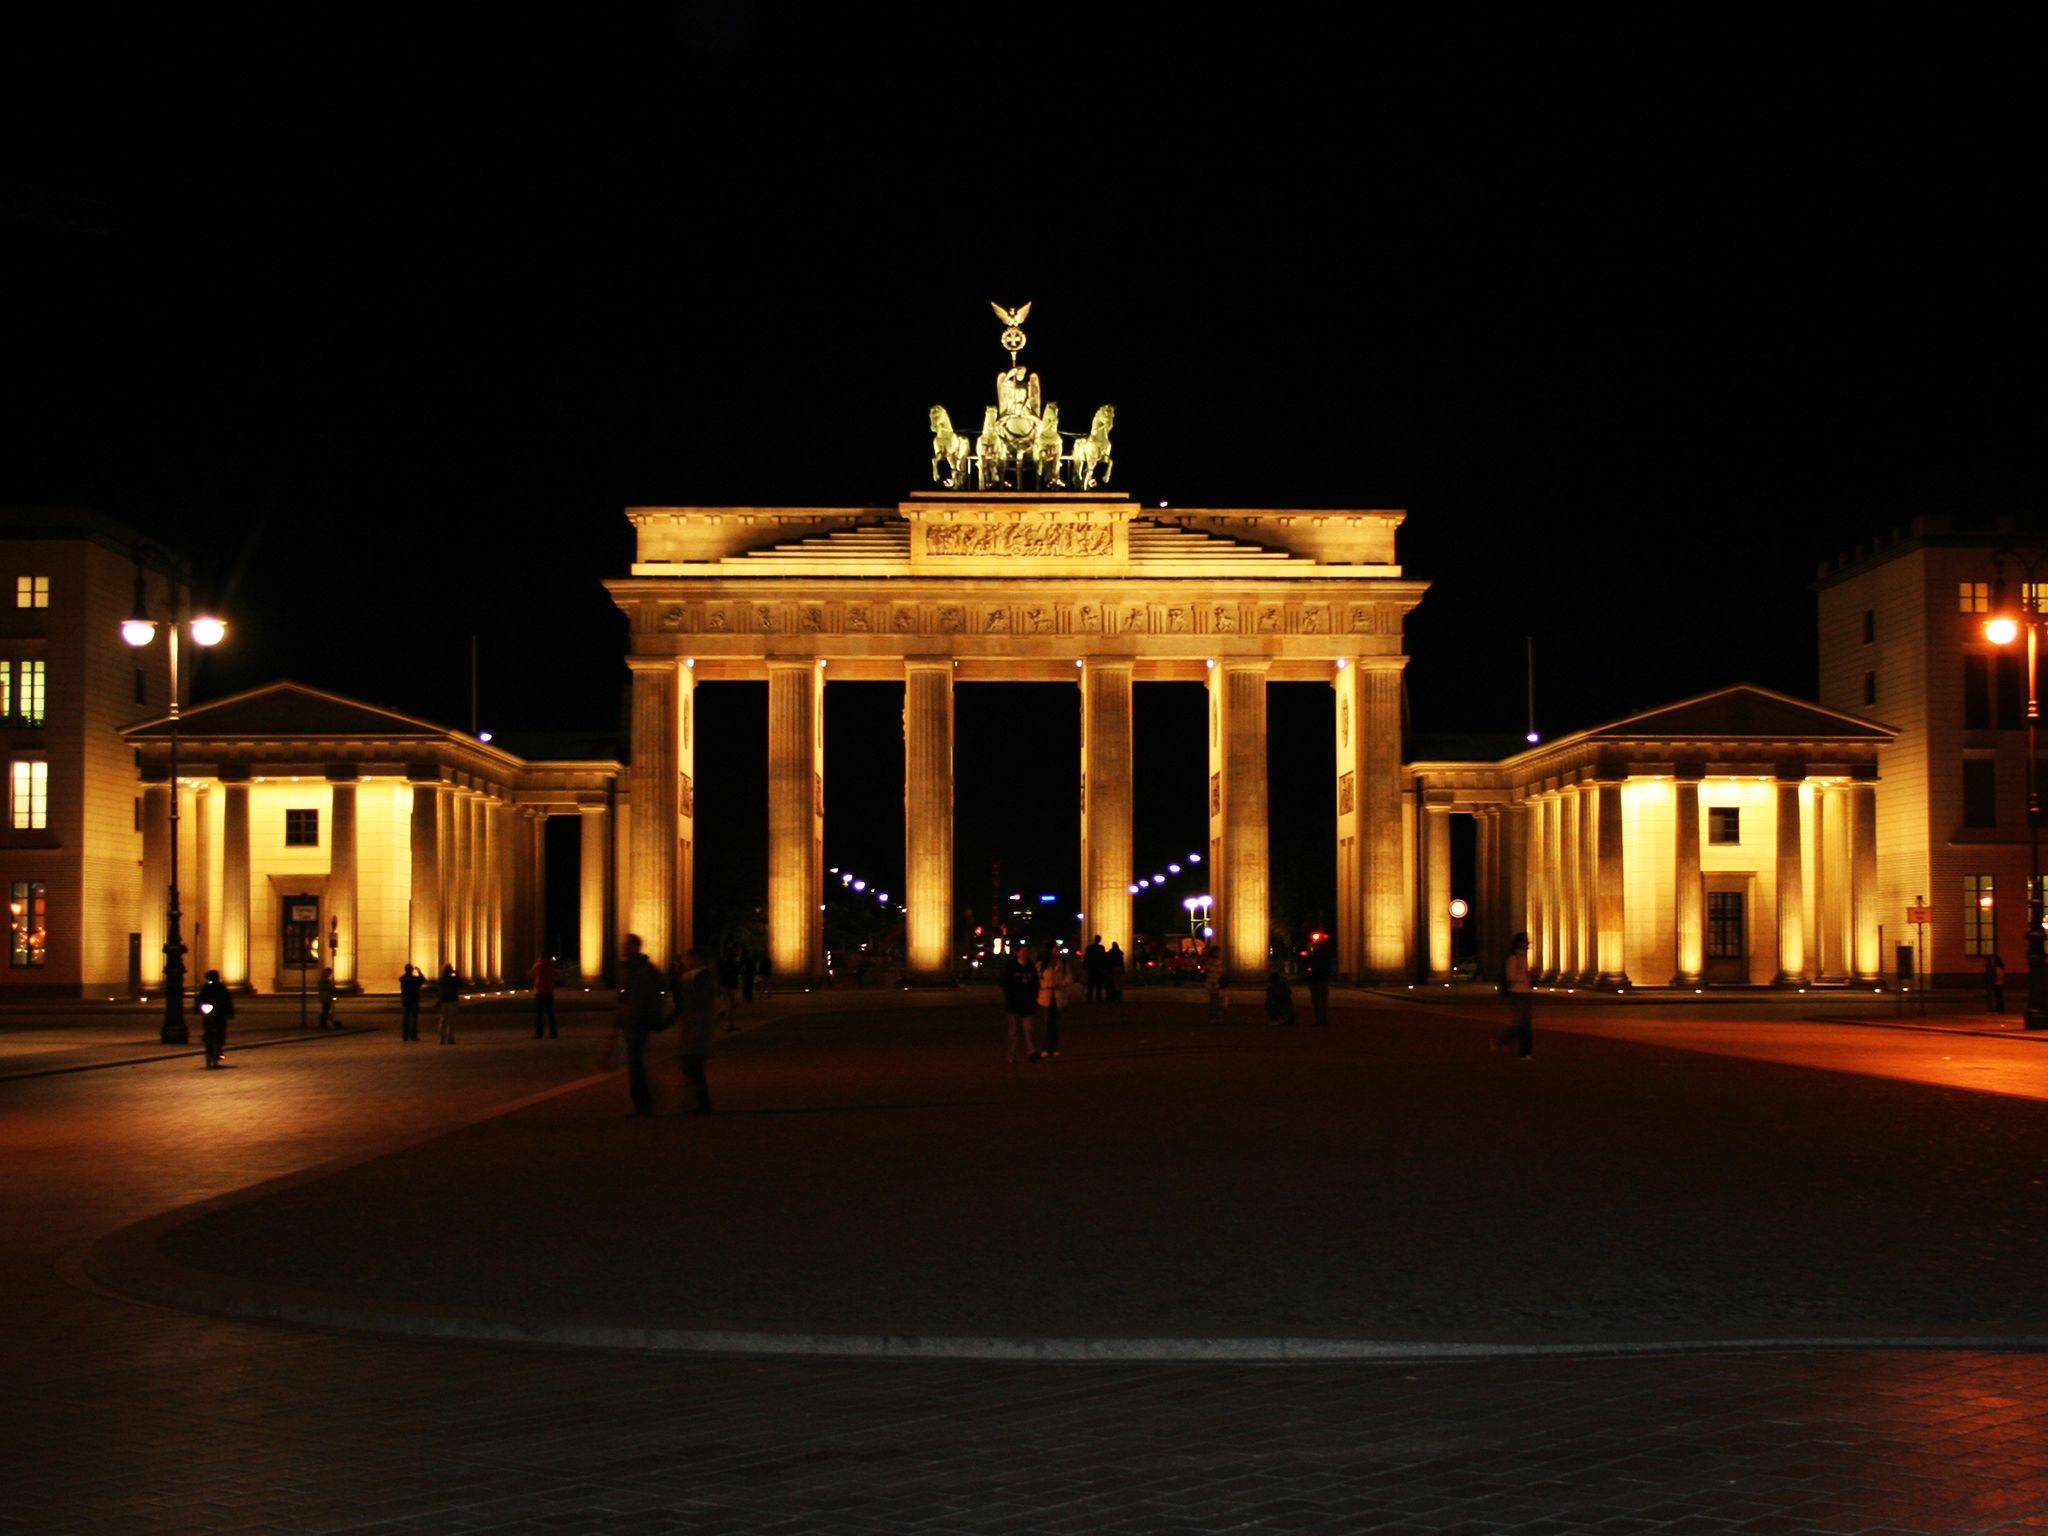 Brandenburg Gate in Berlin at night. This image is from Hasselhoff vs. The Berlin Wall. [Photo of the day - Novembro 2014]